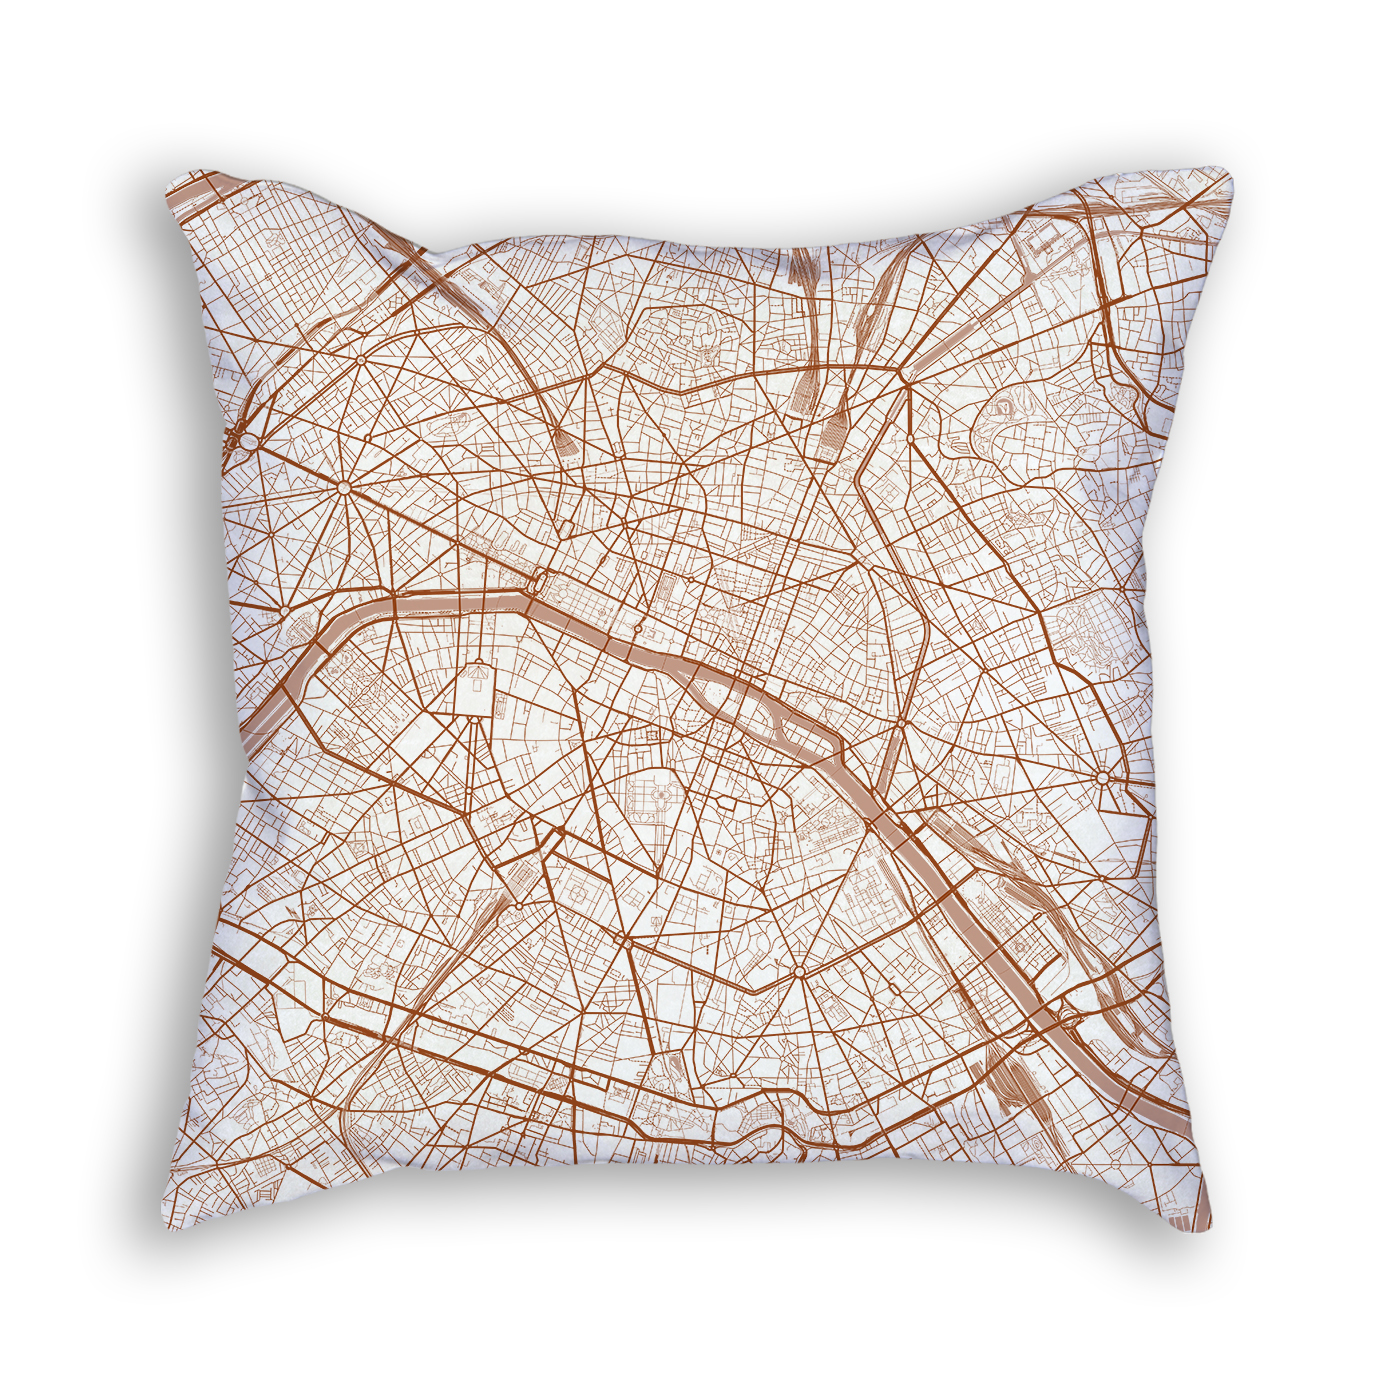 Paris France City Map Art Decorative Throw Pillow